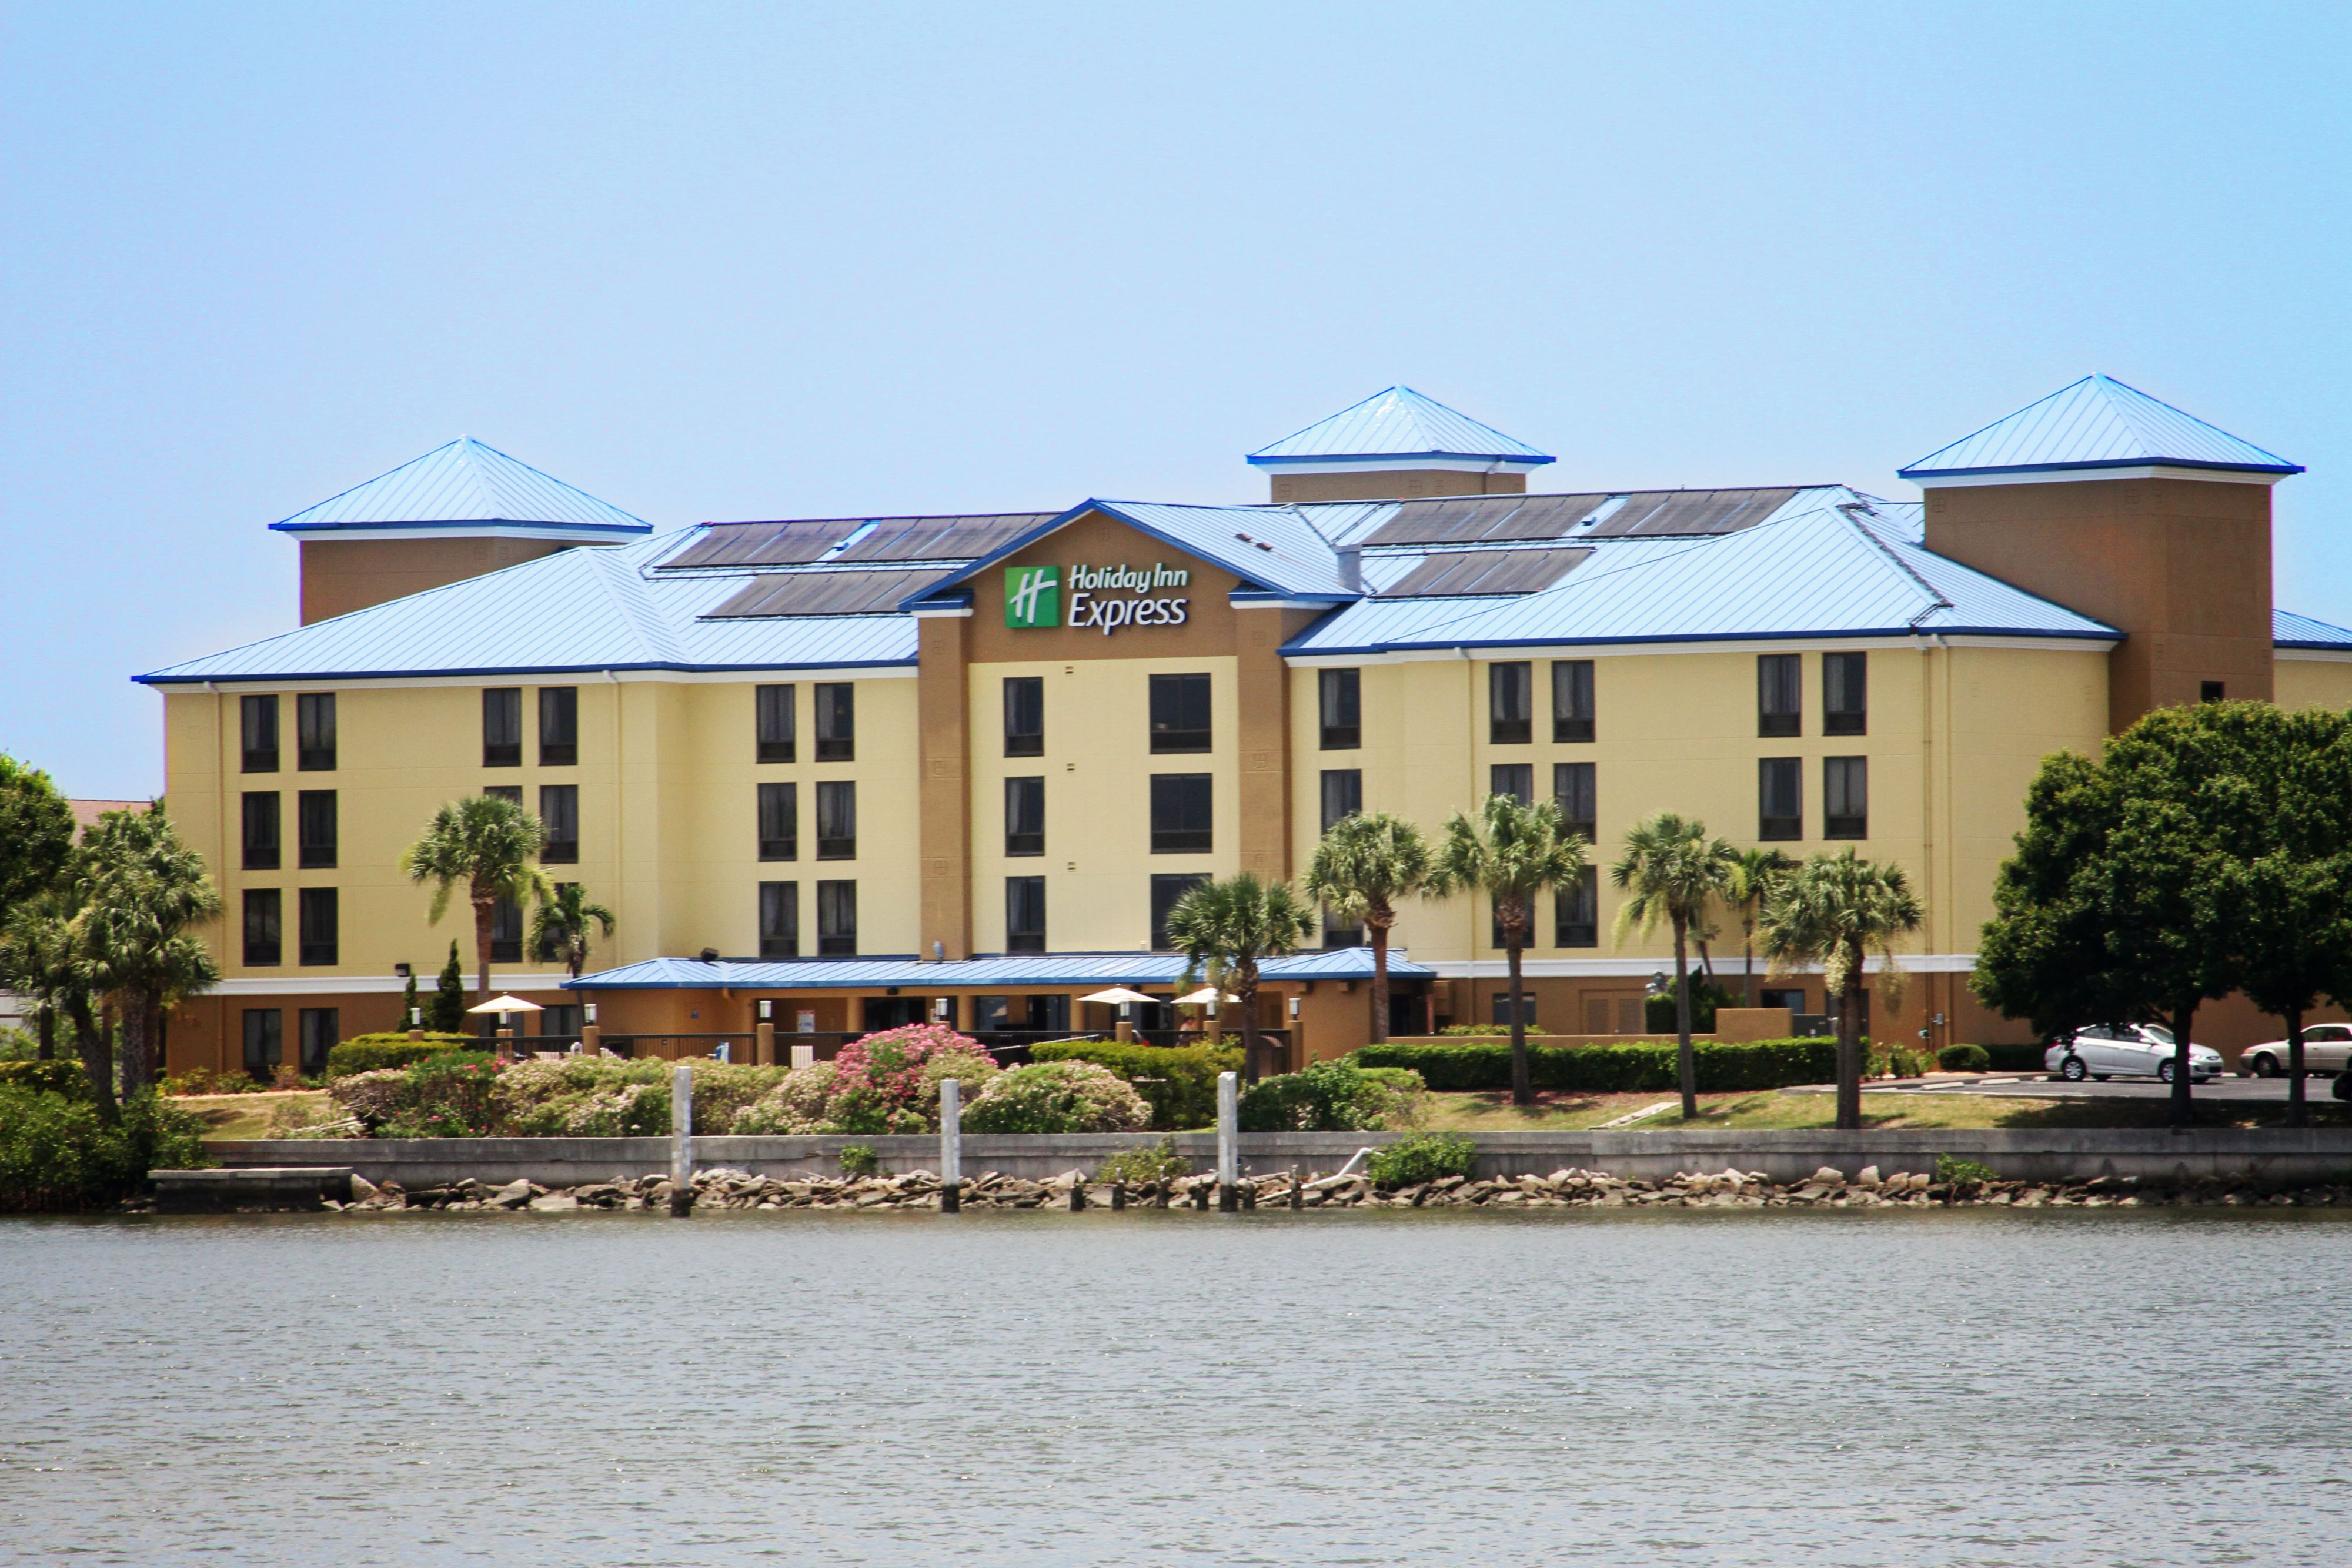 Holiday Inn Express Suites Tampa Usf Busch Gardens